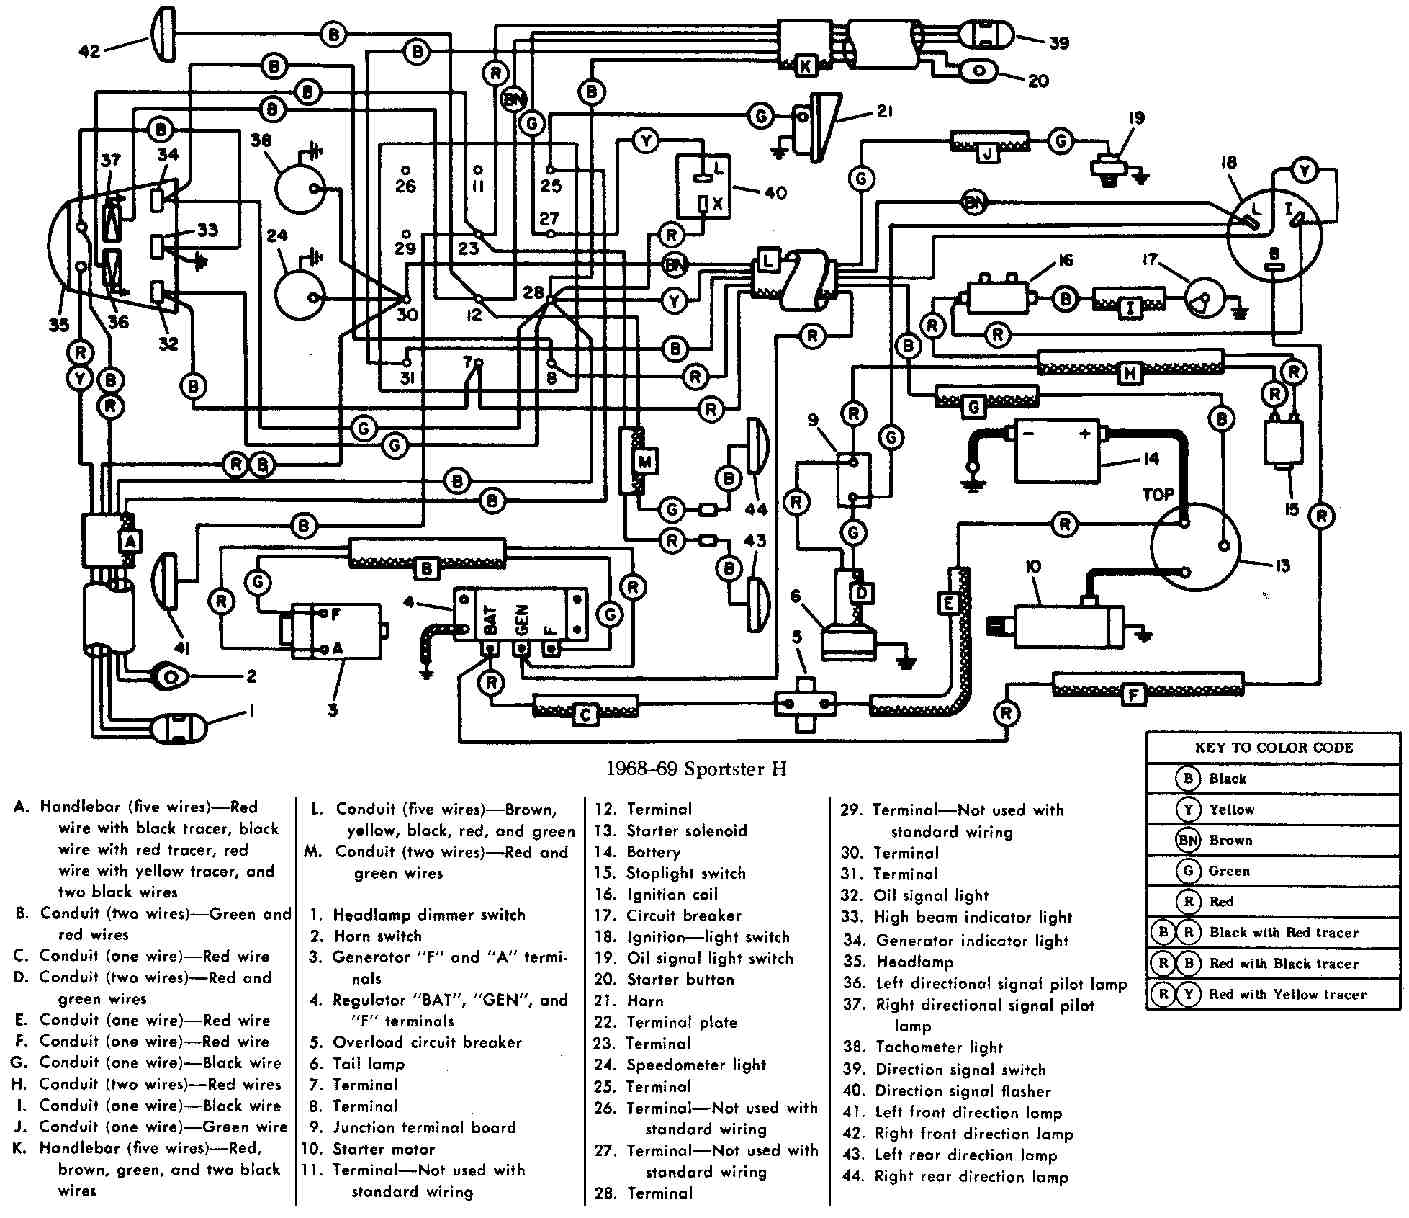 2002 Harley Davidson Sportster Wiring Diagram | Wiring Diagram on